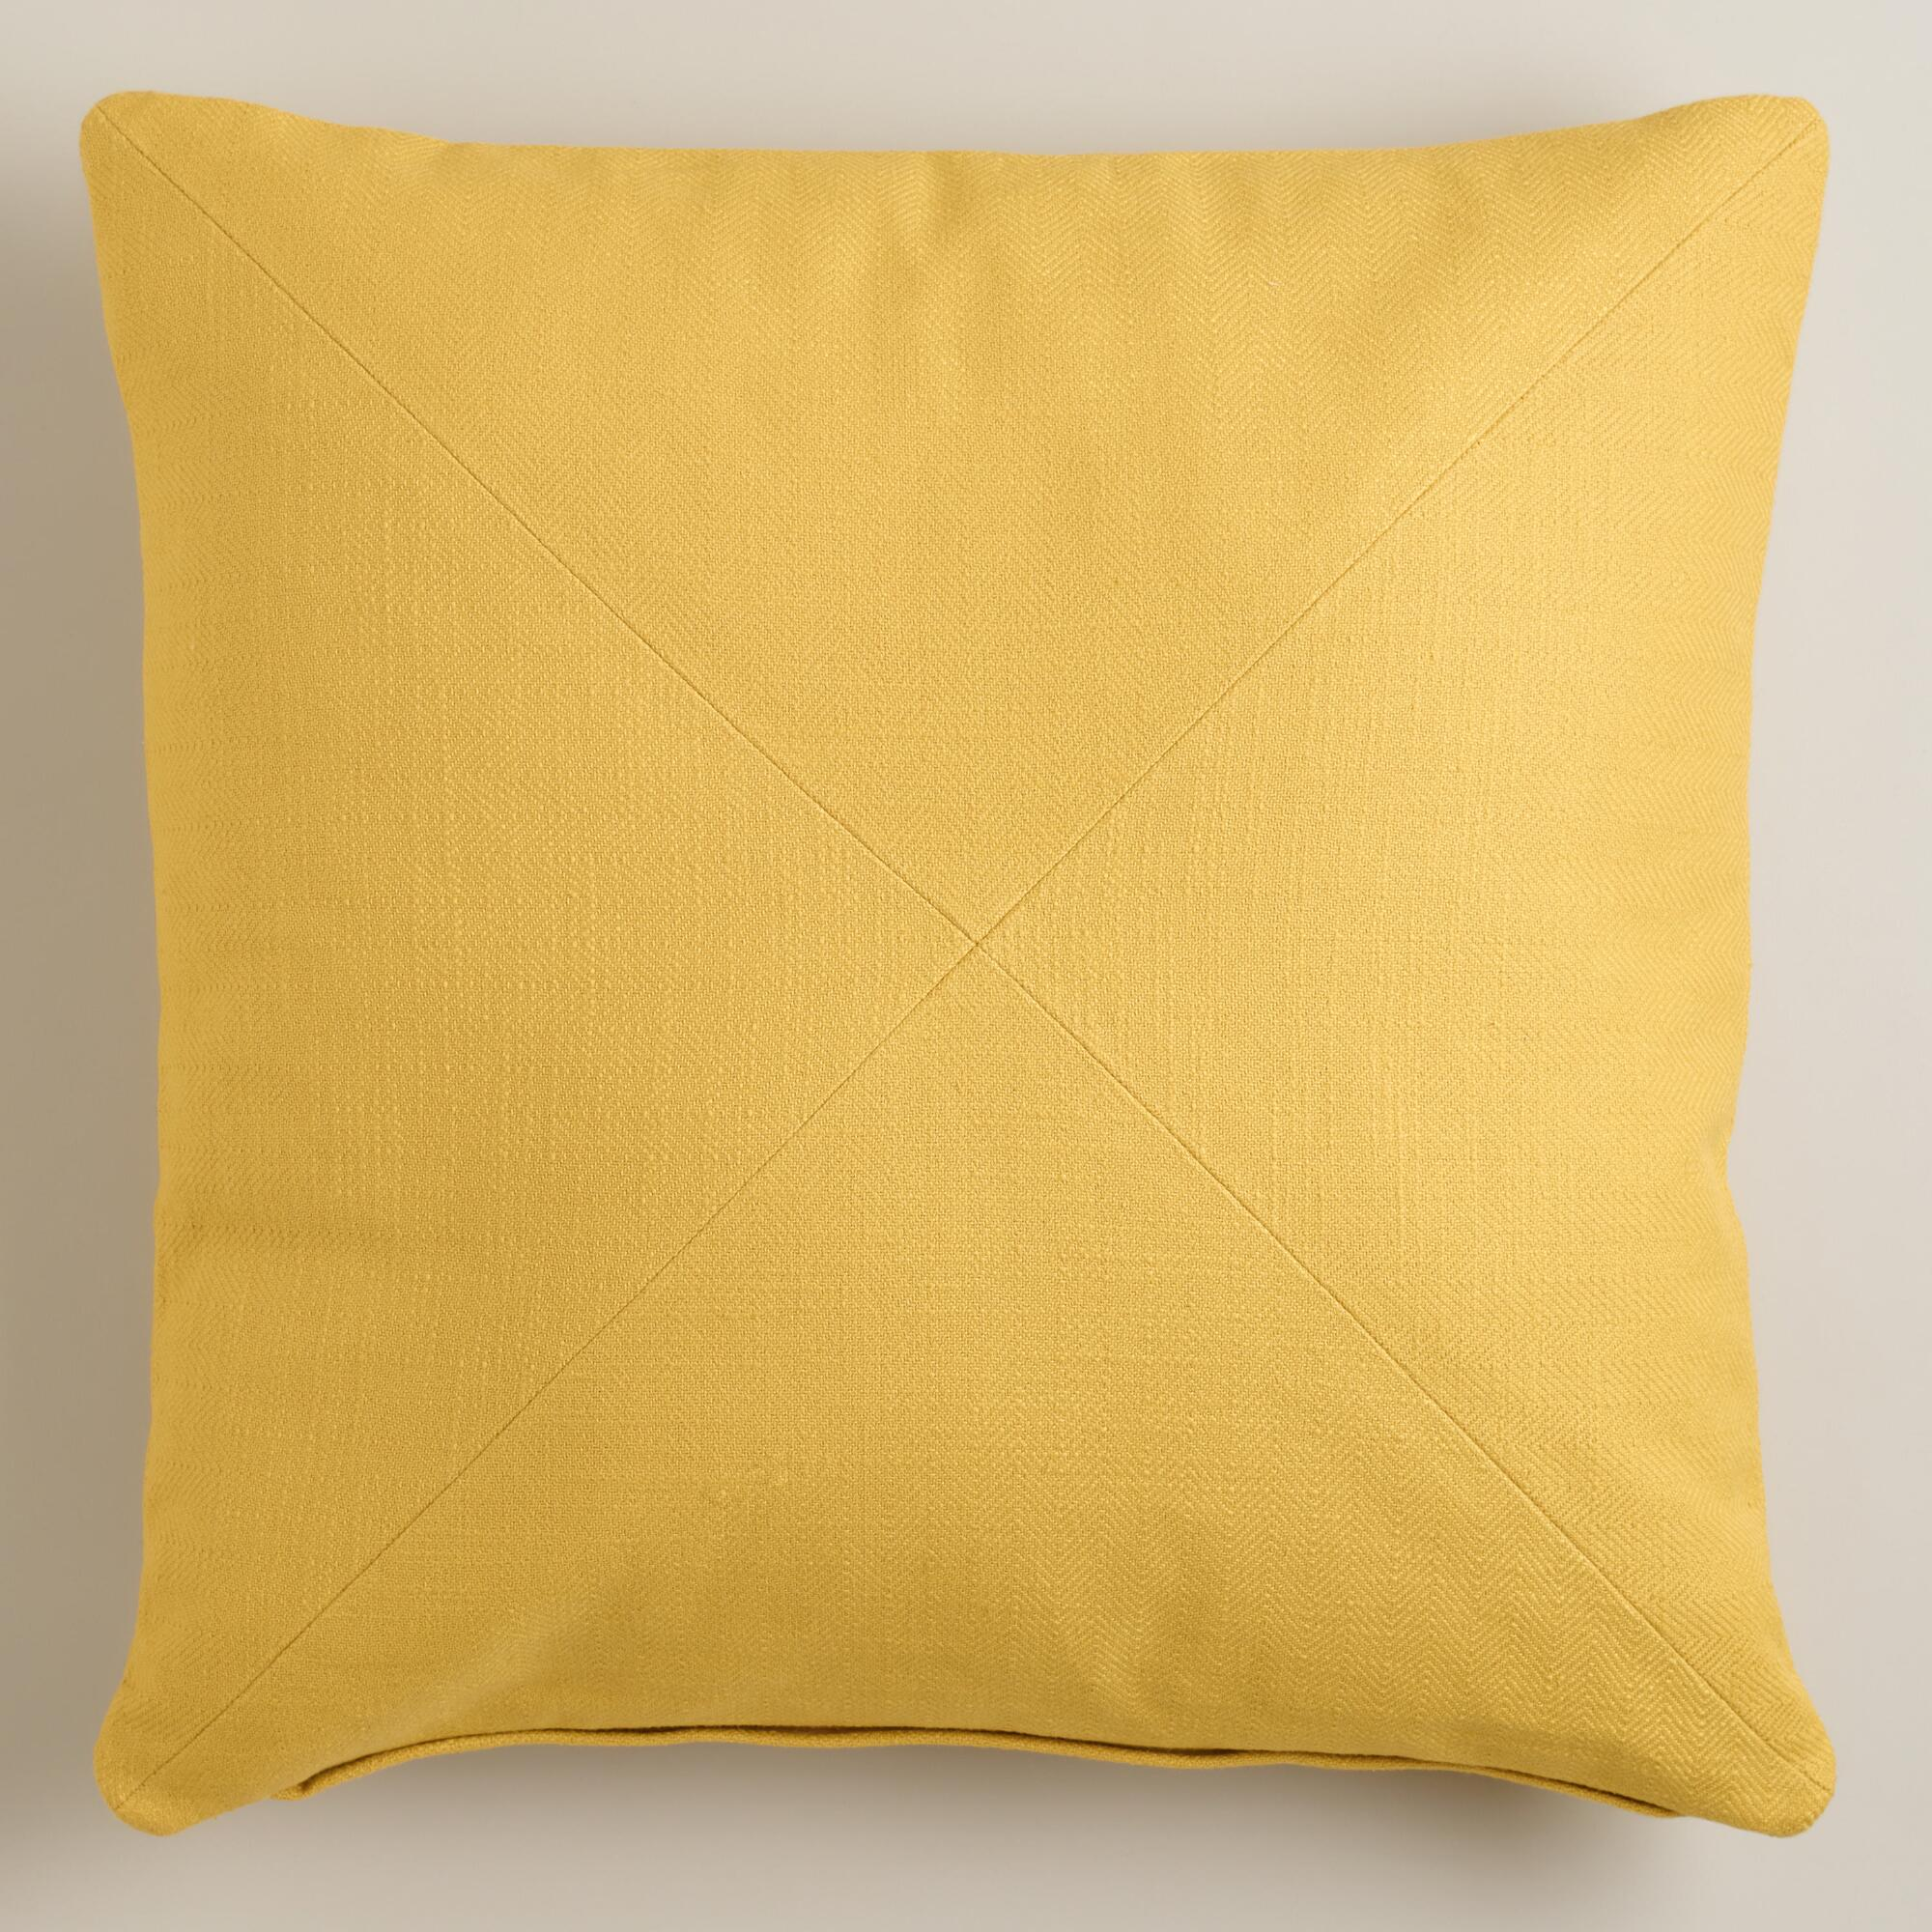 Throw Pillow Yellow : Yellow Herringbone Cotton Throw Pillow World Market